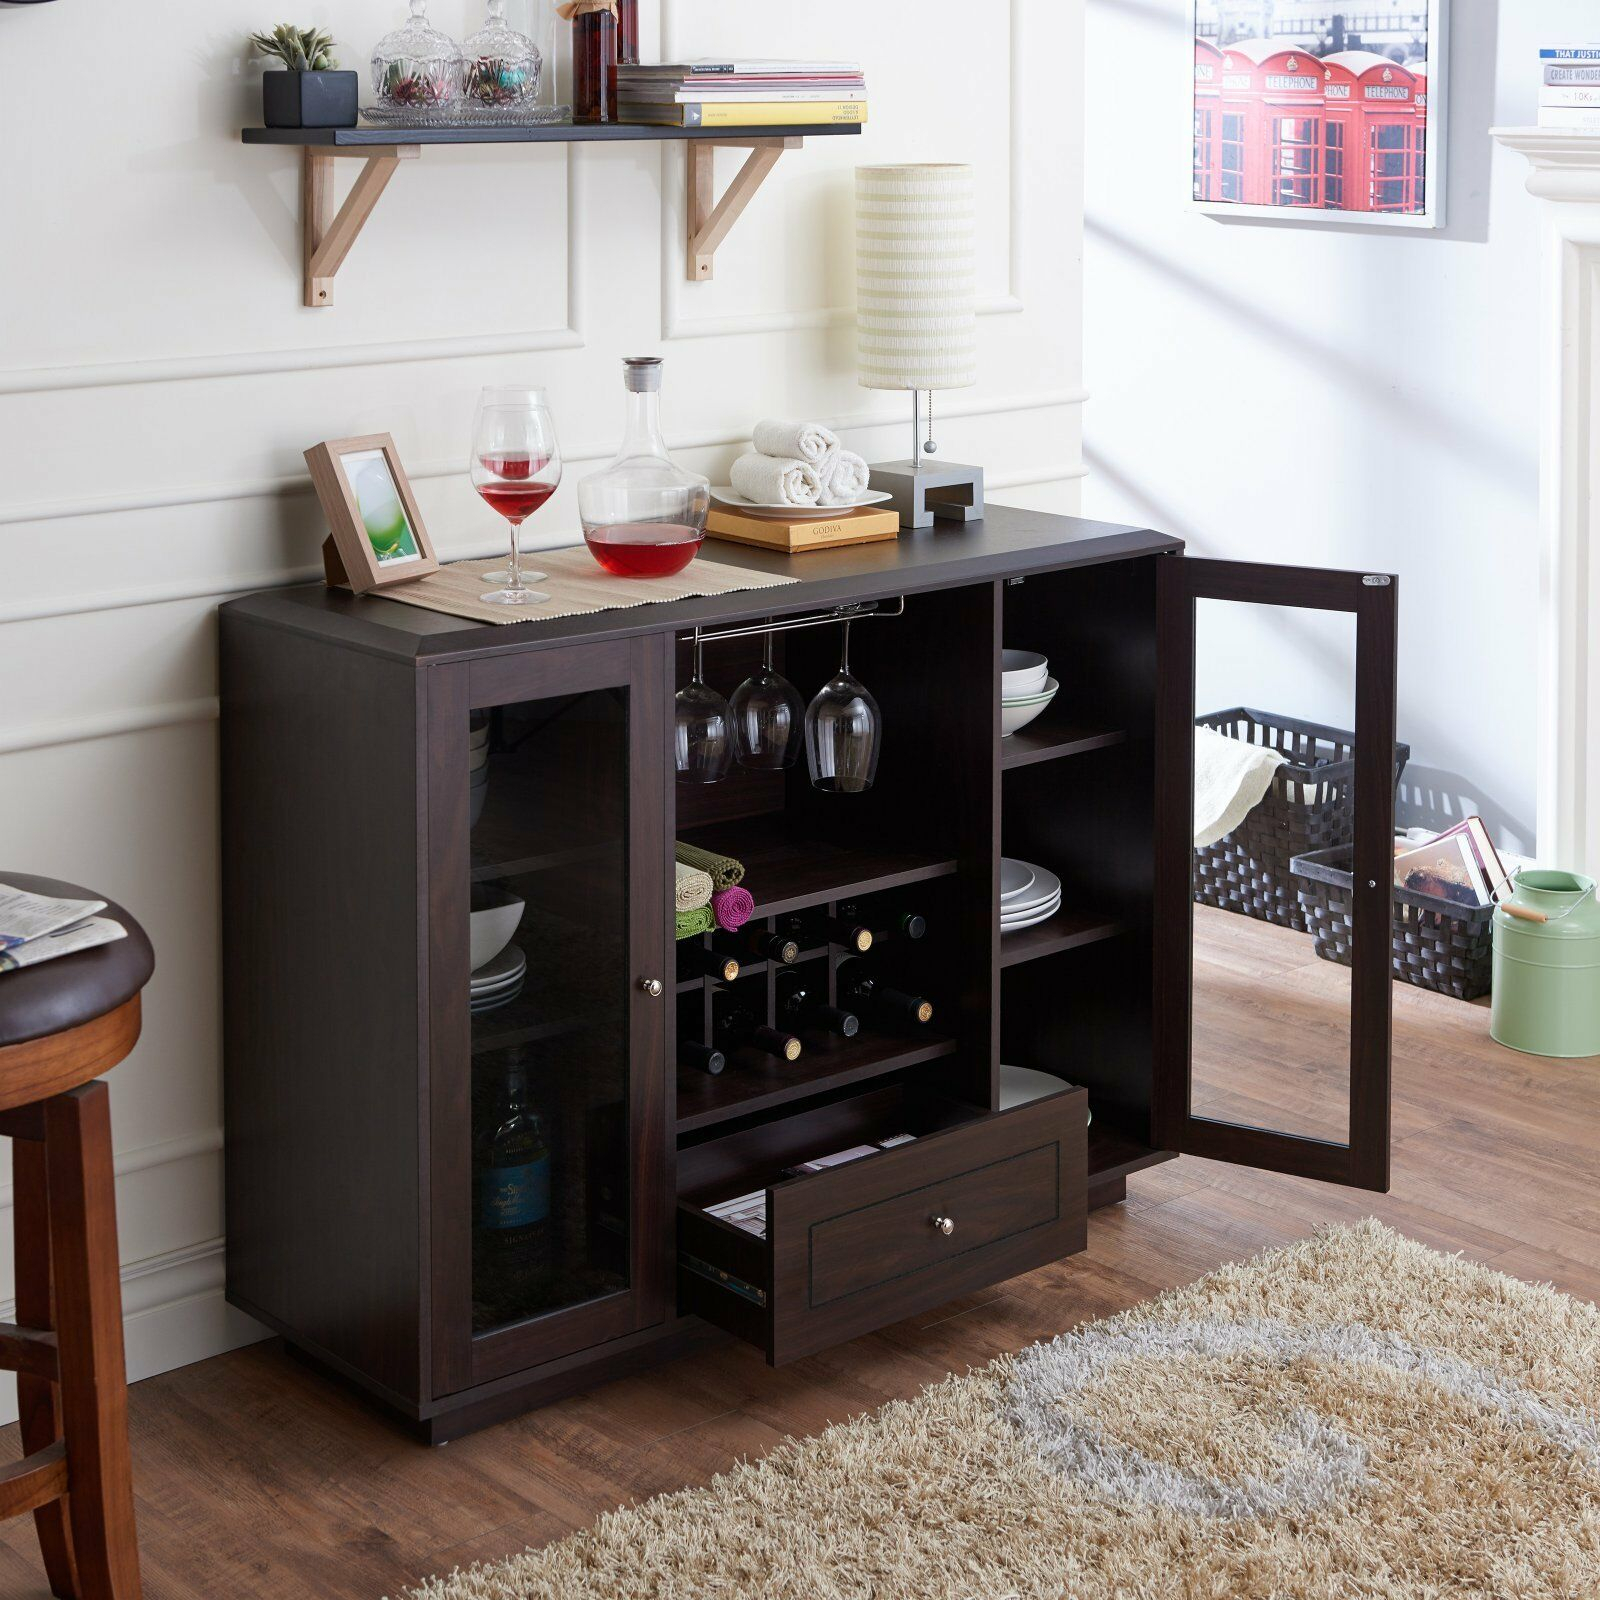 Furniture Of America Kenna Contemporary Multi-Storage Dining Buffet,  Espresso intended for Industrial Cement-Like Multi-Storage Dining Buffets (Image 15 of 30)